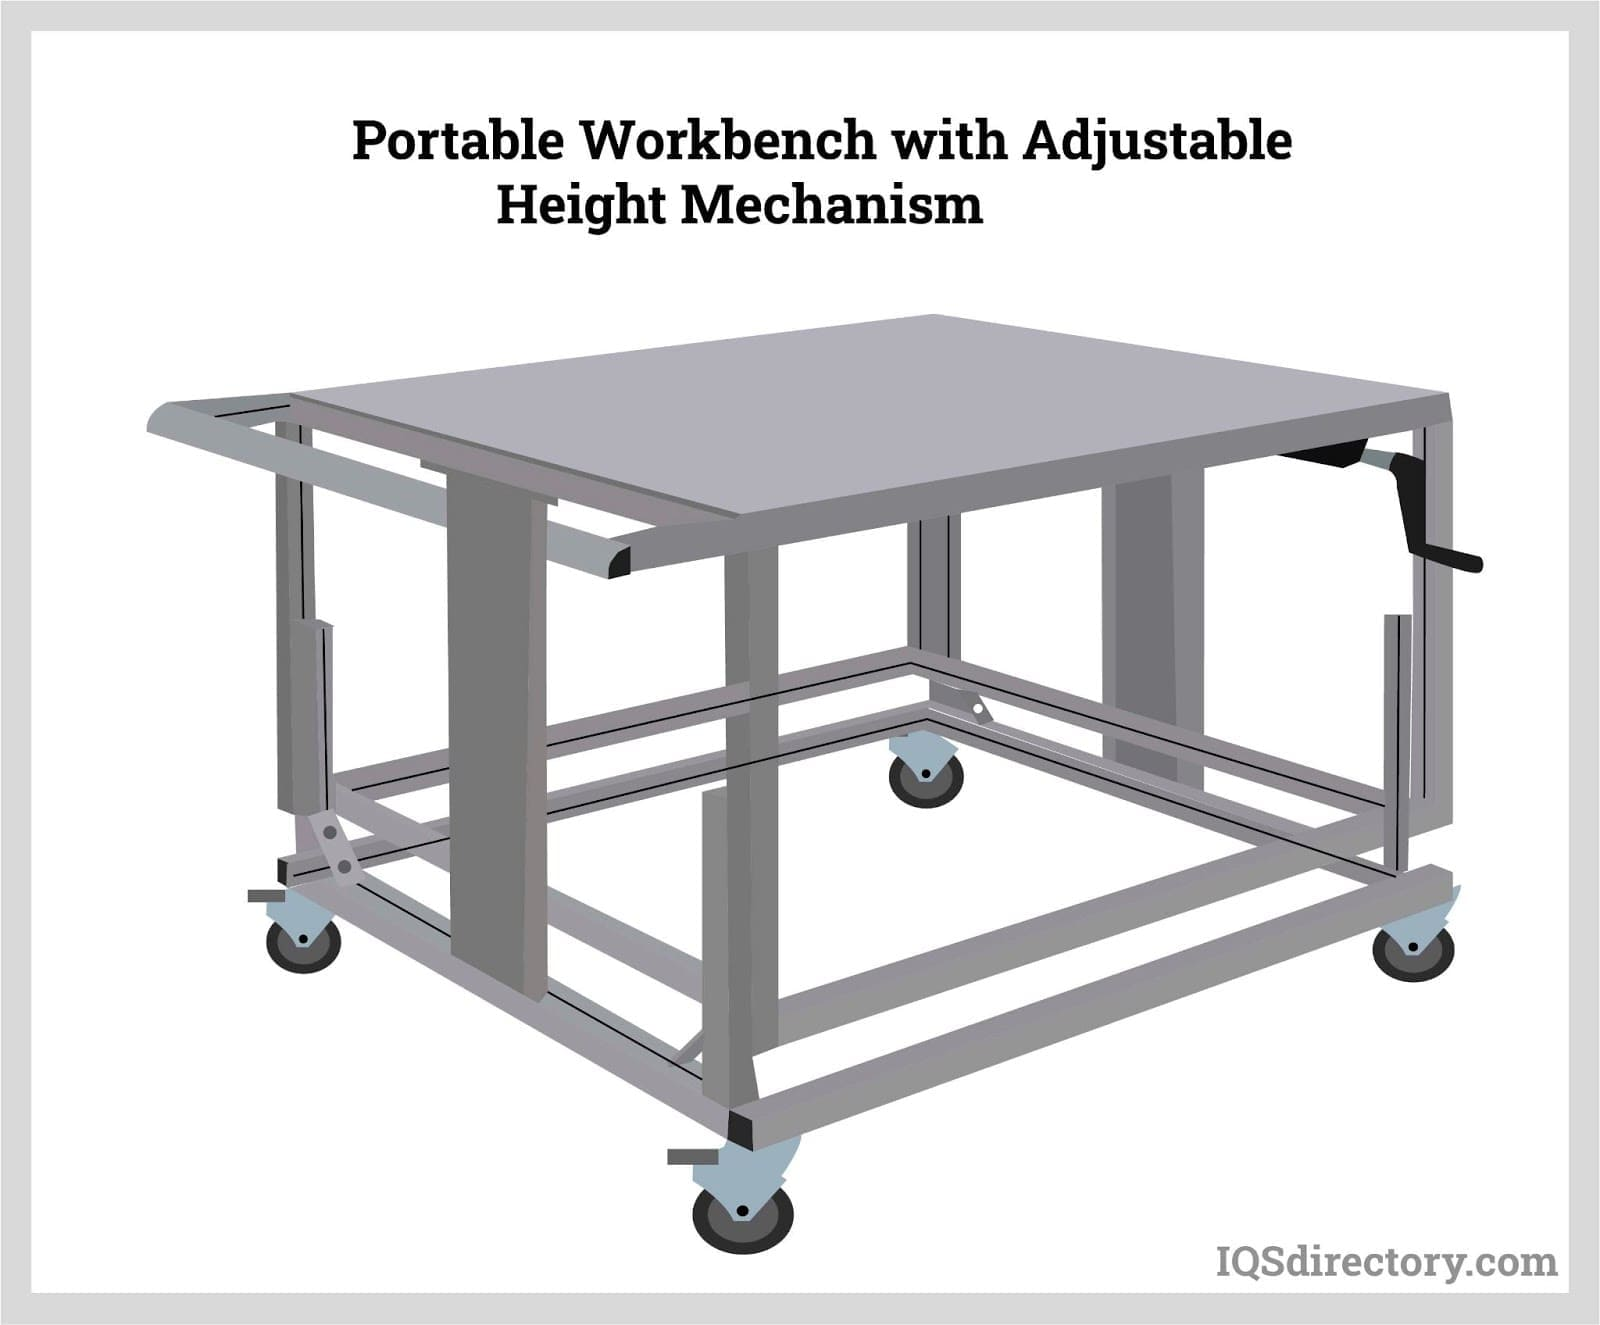 Portable Workbench with Adjustable Height Mechanism